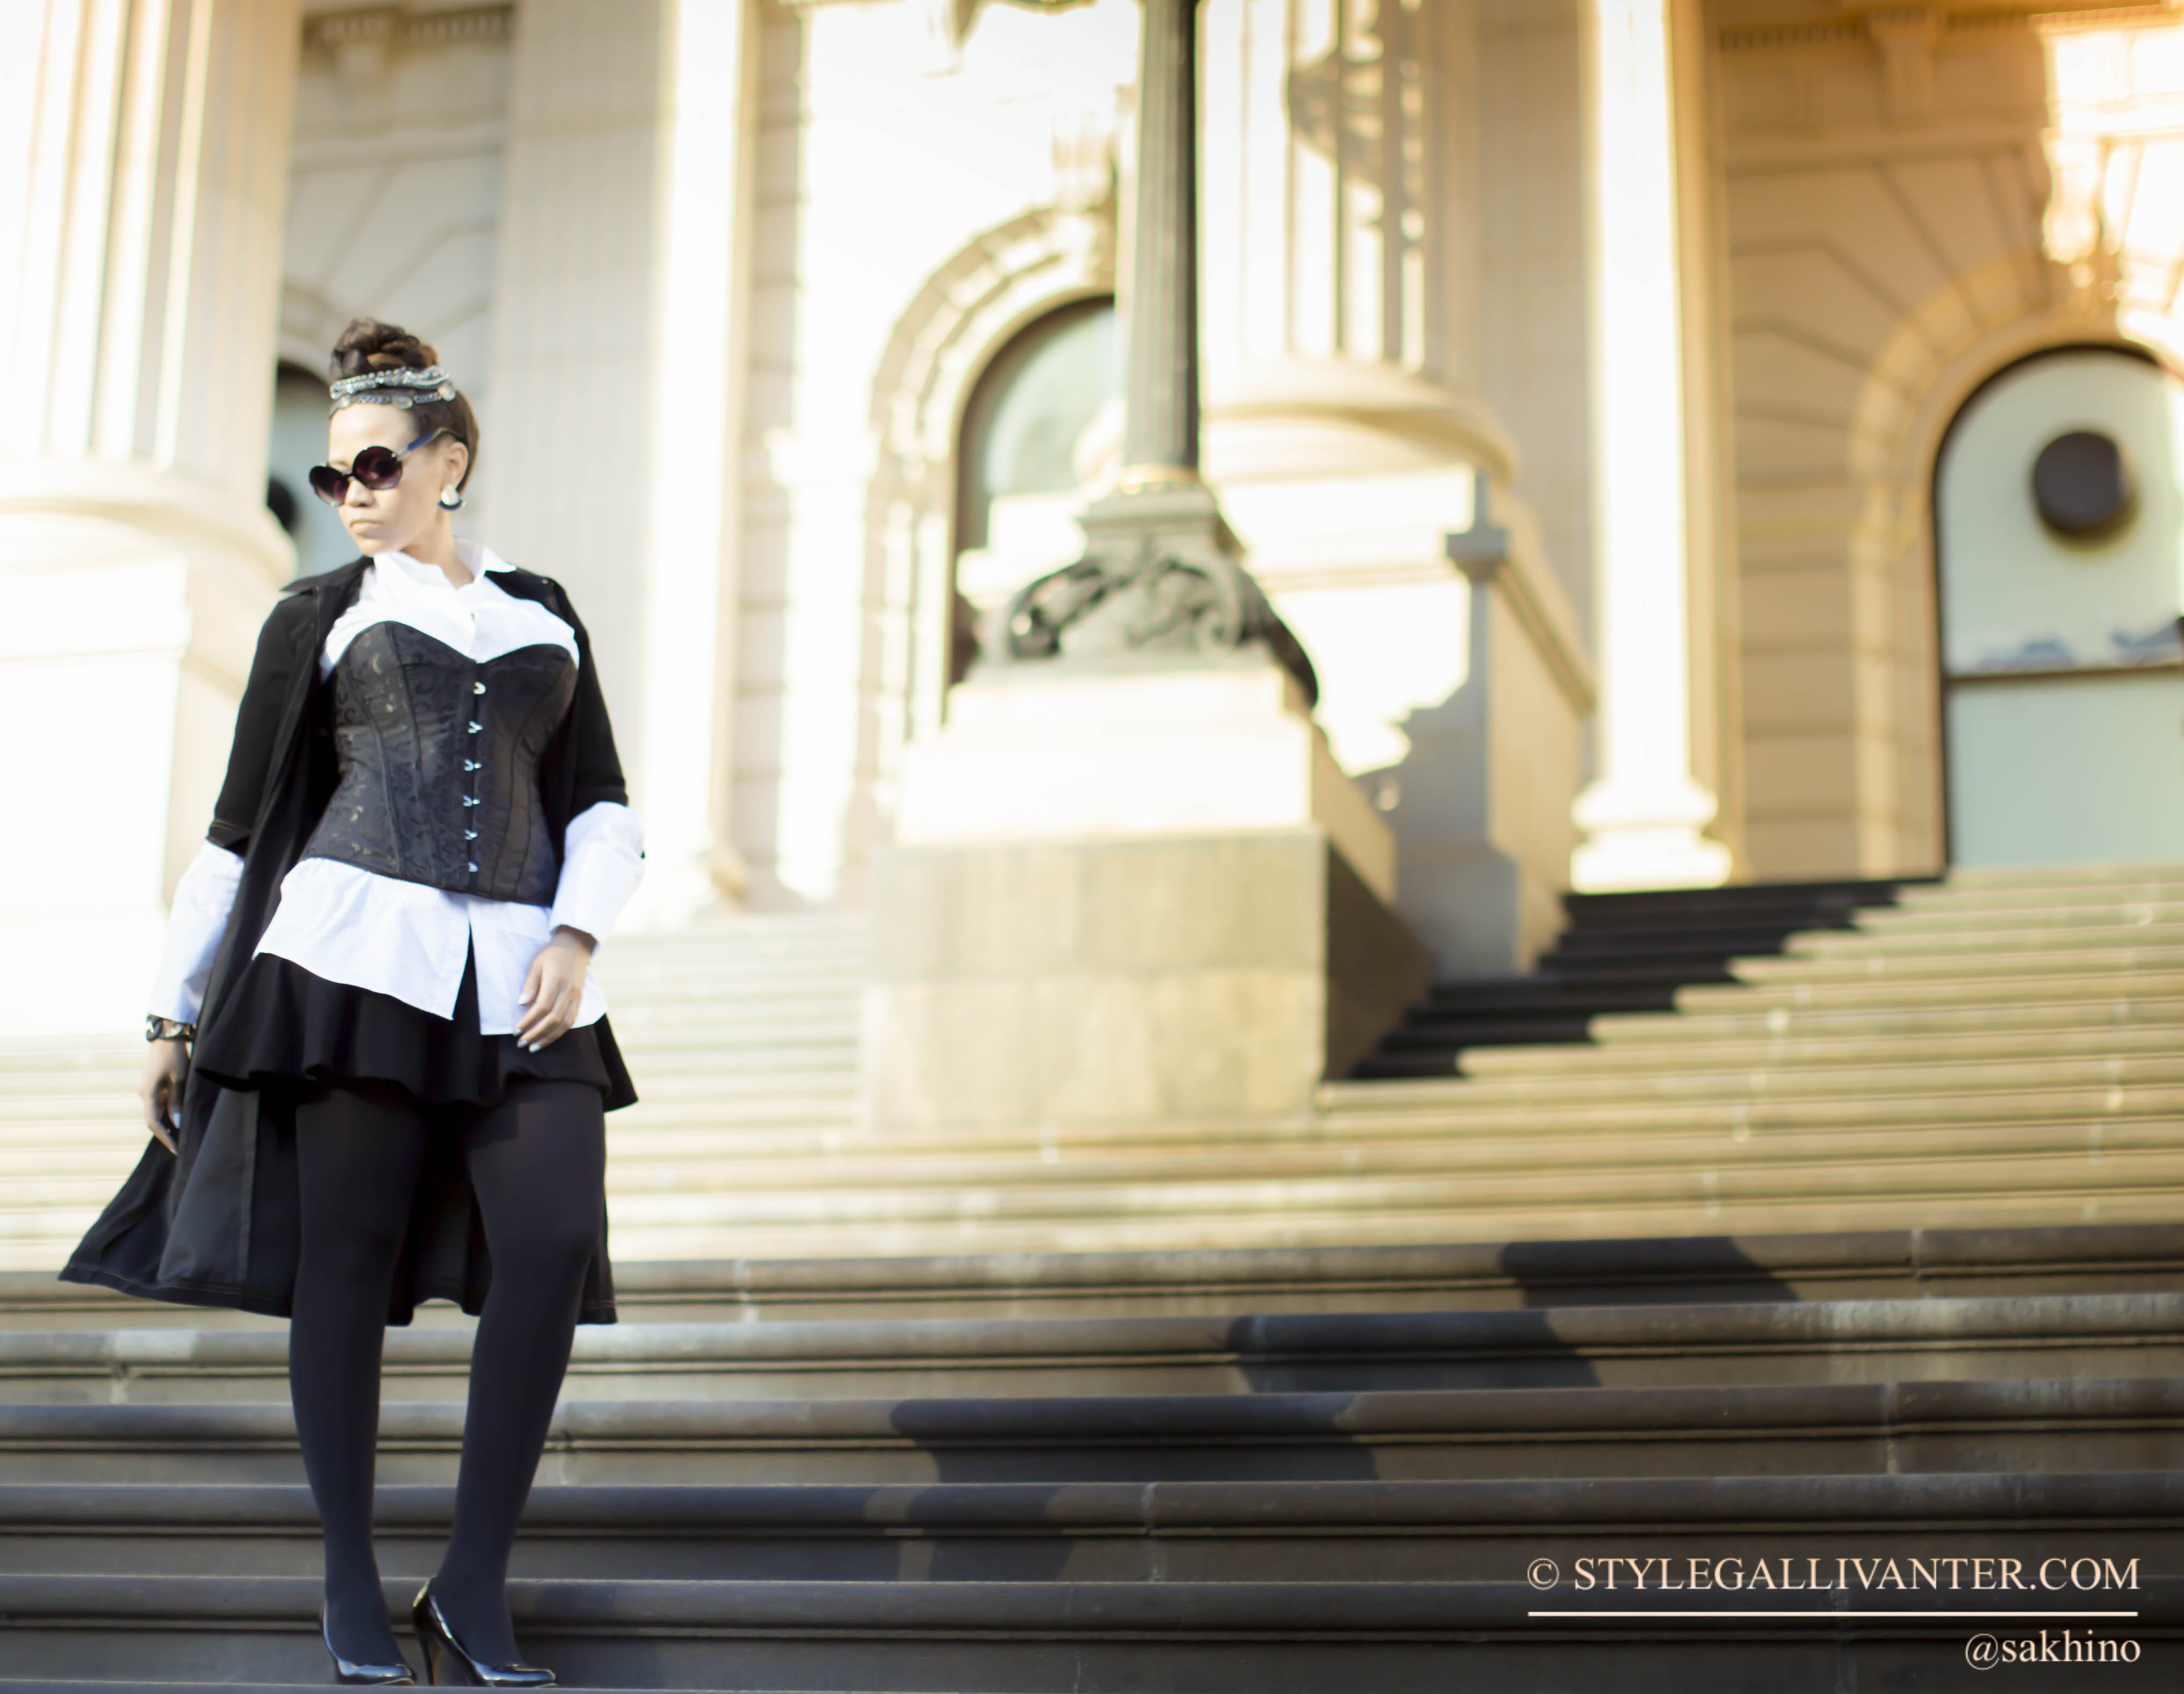 copyright-stylegallivanter.com_not-to-be-used-without-permission_top-fashion-bloggers-melbourne-2015_africa's-top-fashion-blogs_melbourne's-best-fashion-personal-style-bloggers---5